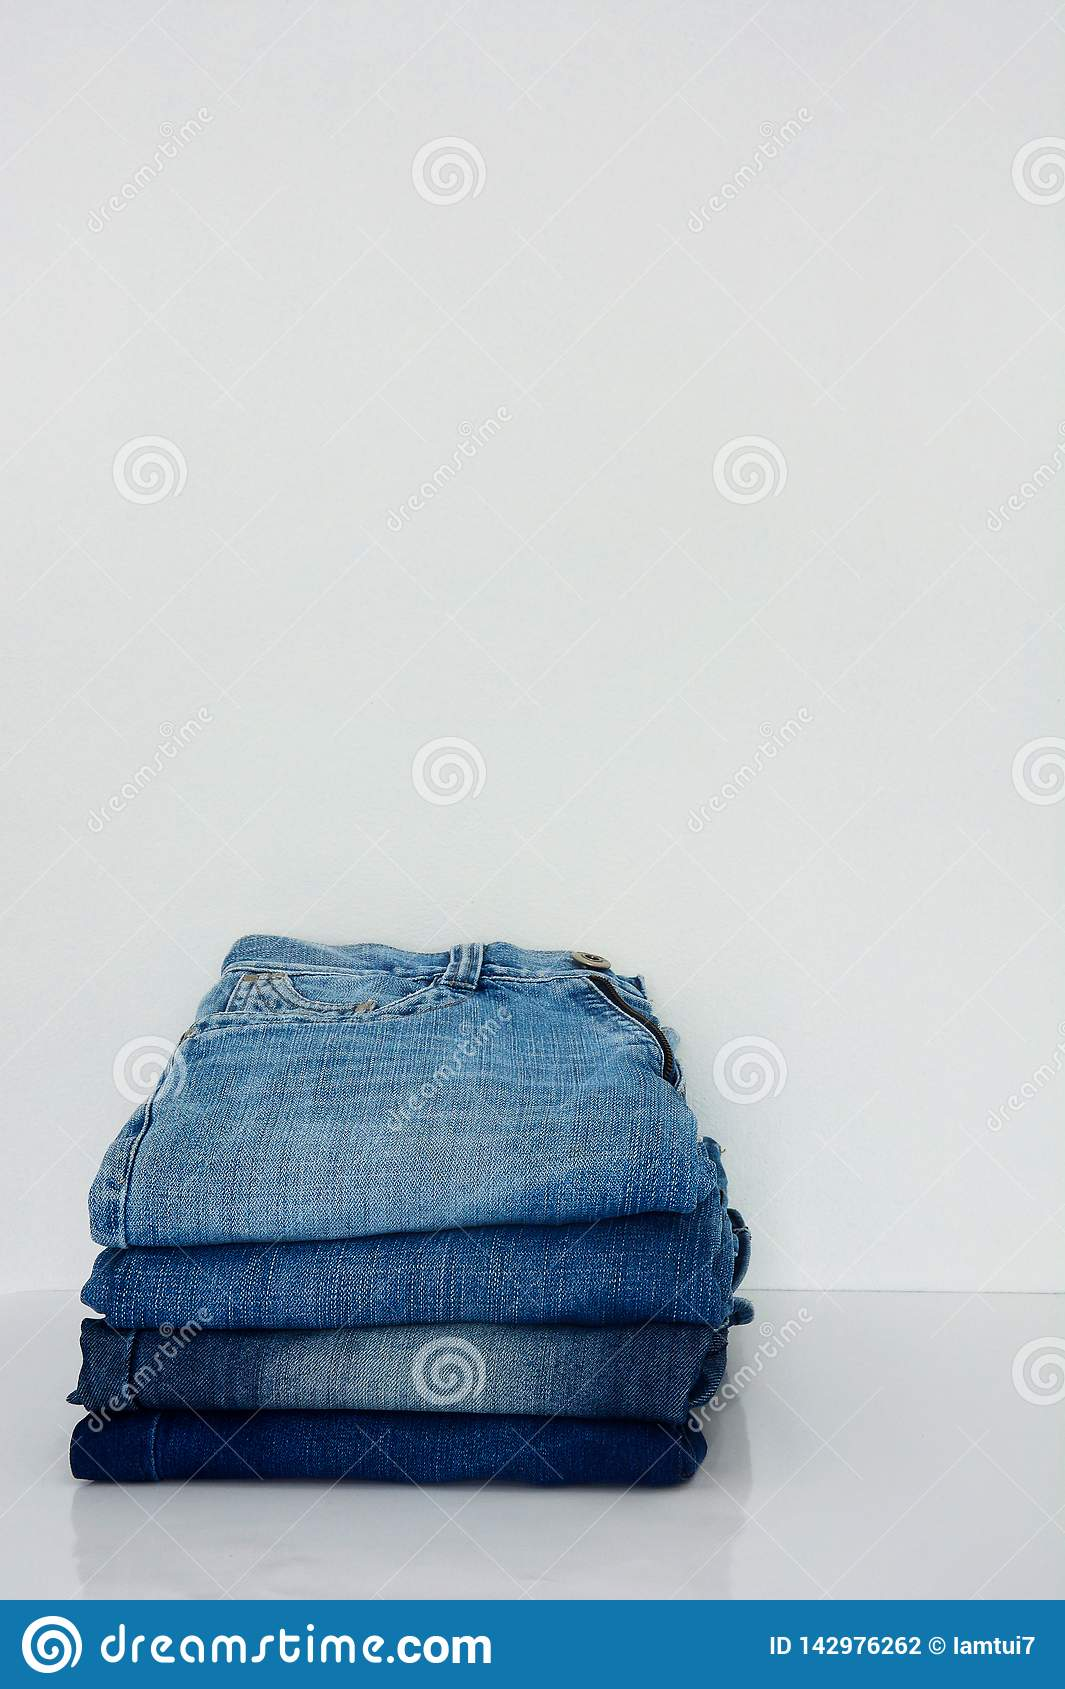 Stack of blue jeans on white background